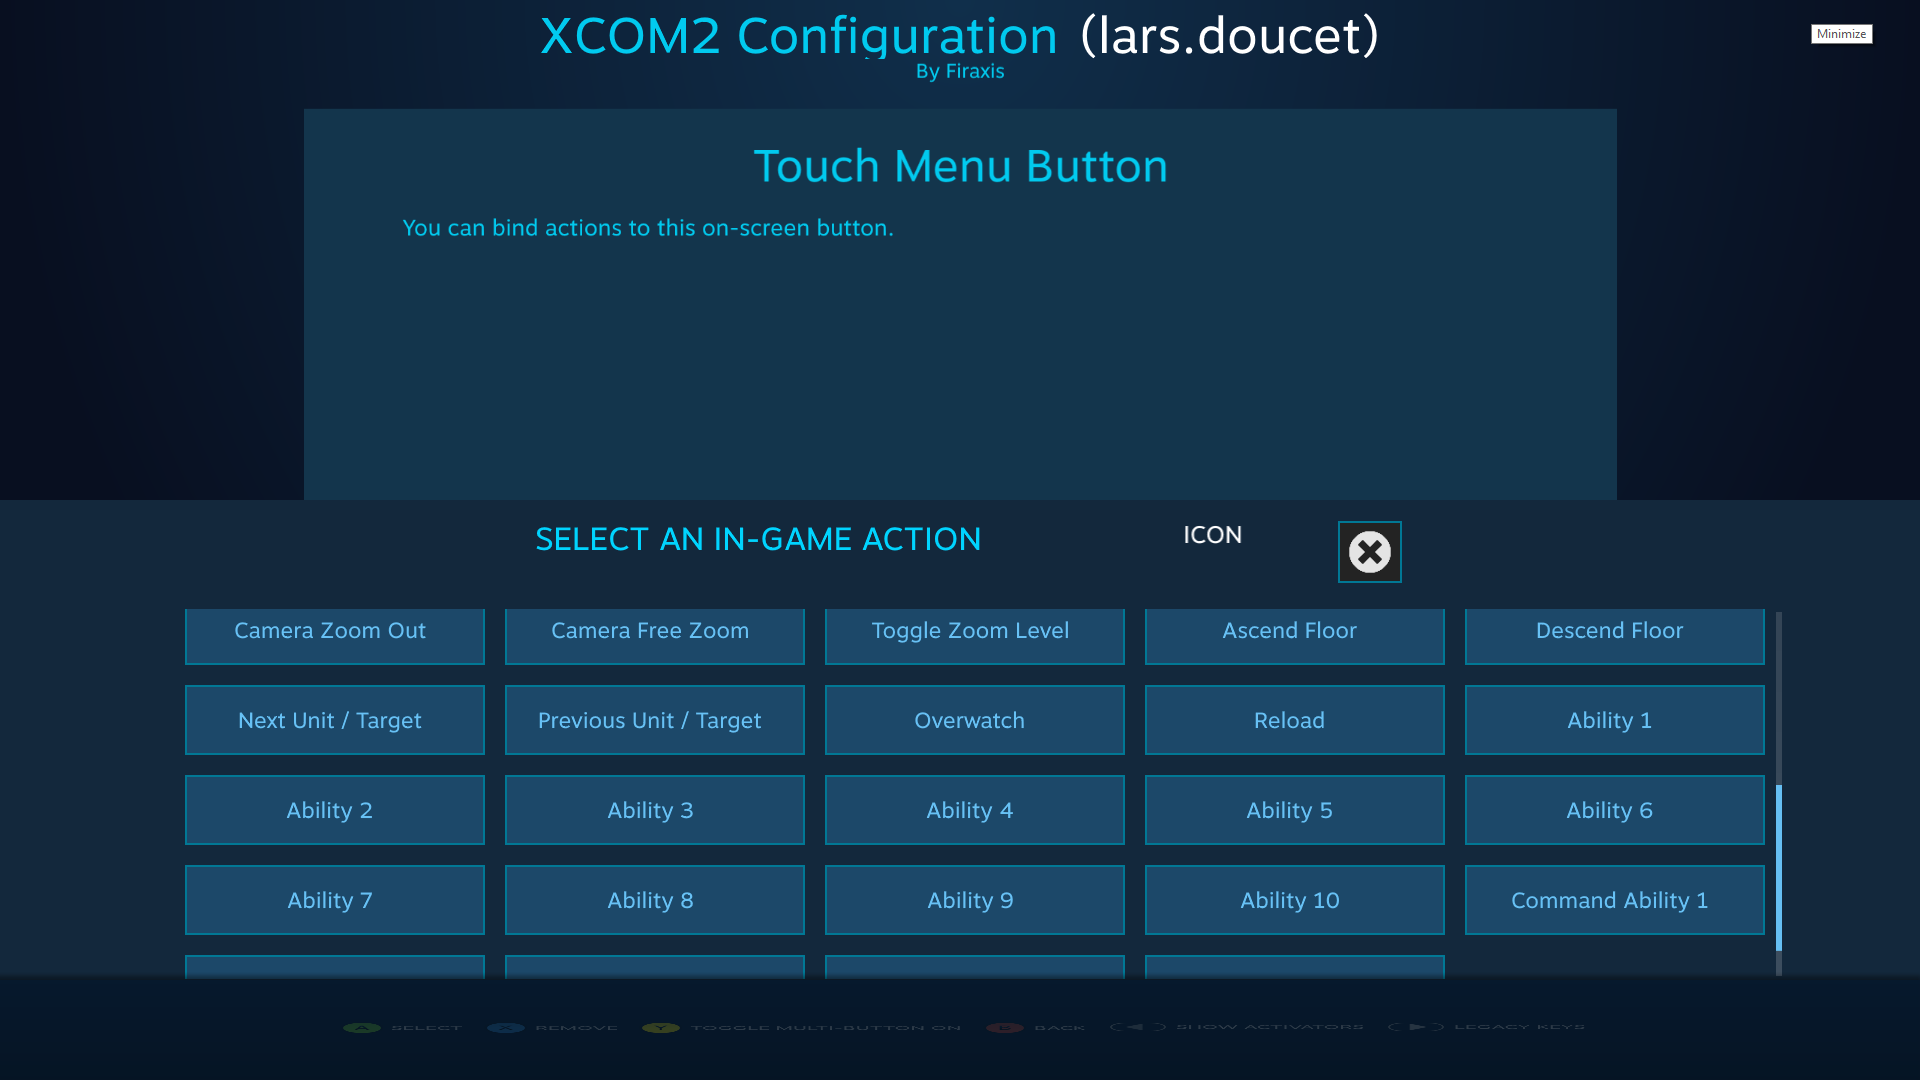 xcom2_touch_menu_button.png